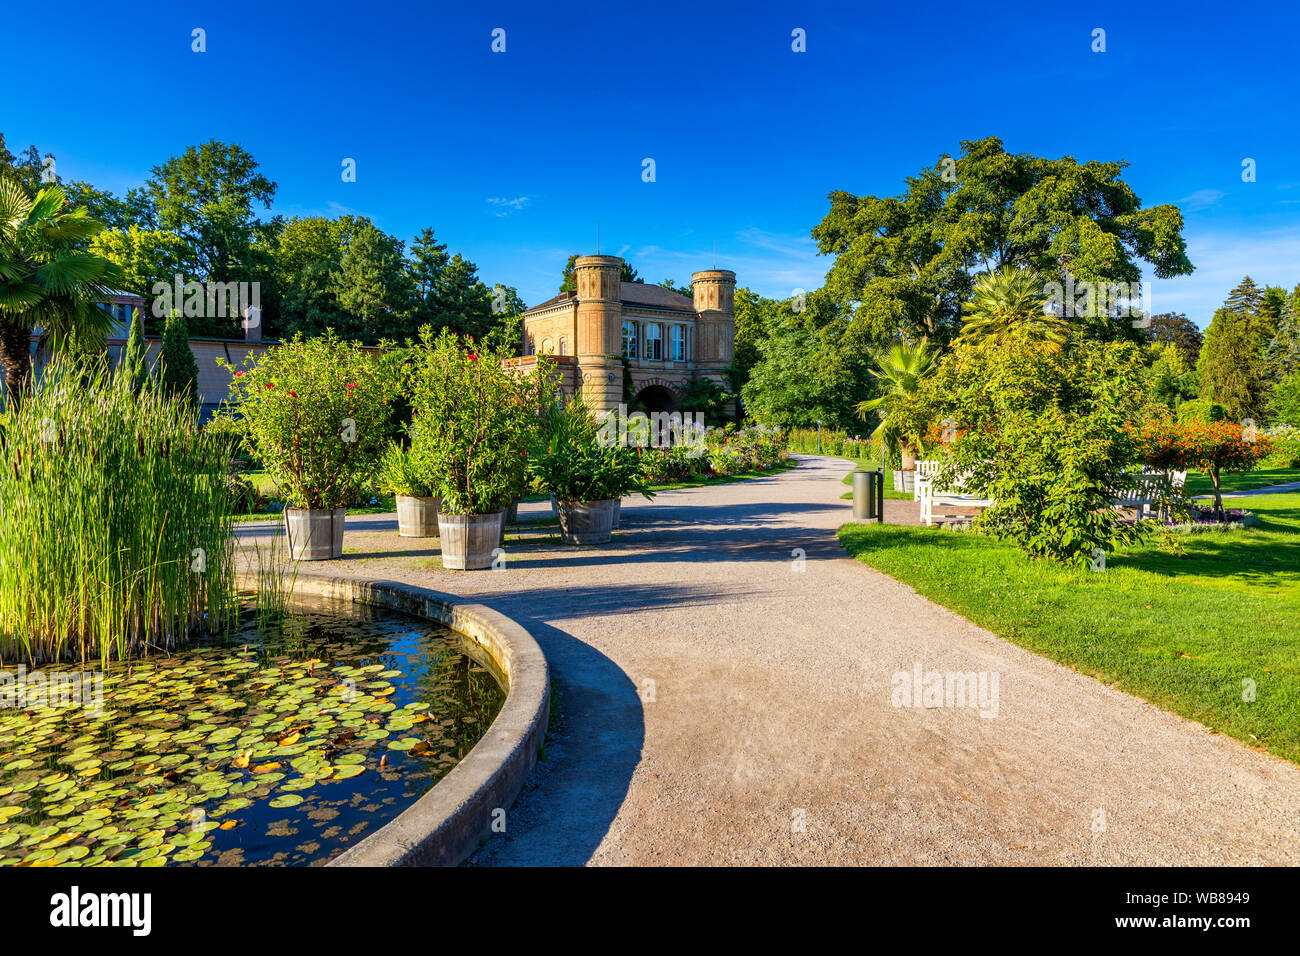 Fountain Karlsruhe High Resolution Stock Photography And Images Alamy